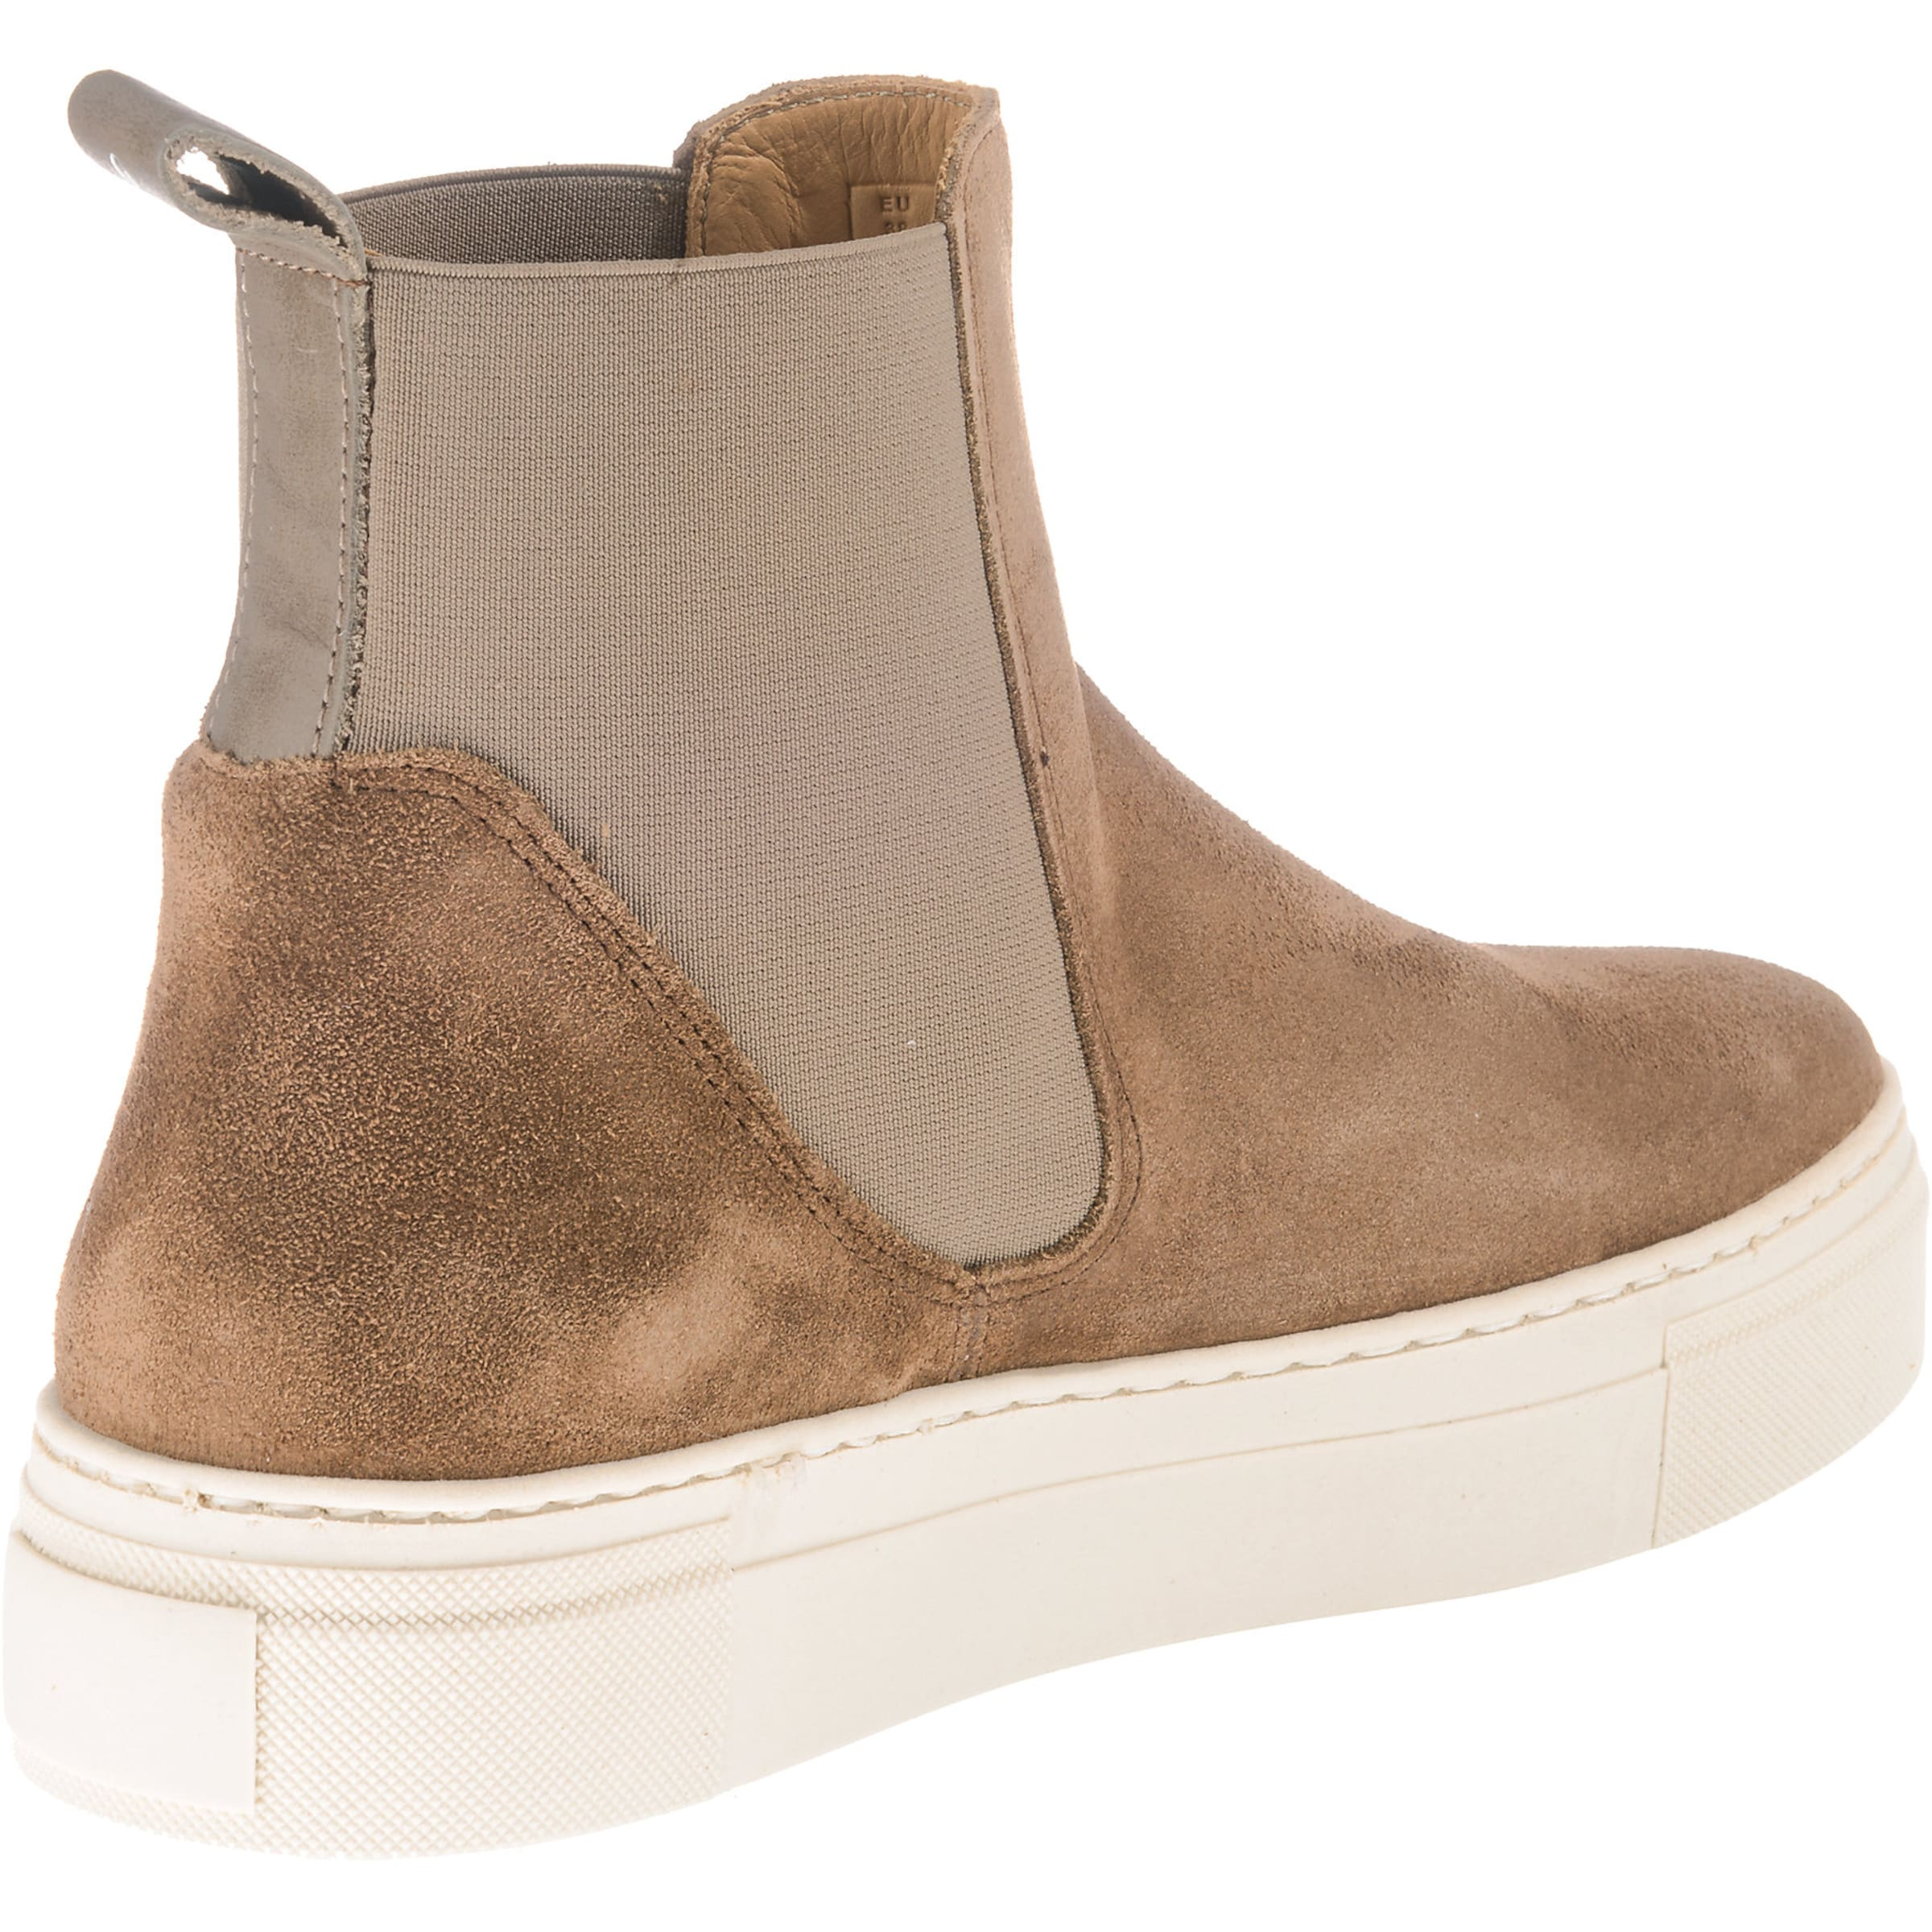 Stiefelette Gant Stiefelette 'marie' Gant 'marie' ChamoisOffwhite ChamoisOffwhite In In 6mIyvYb7fg